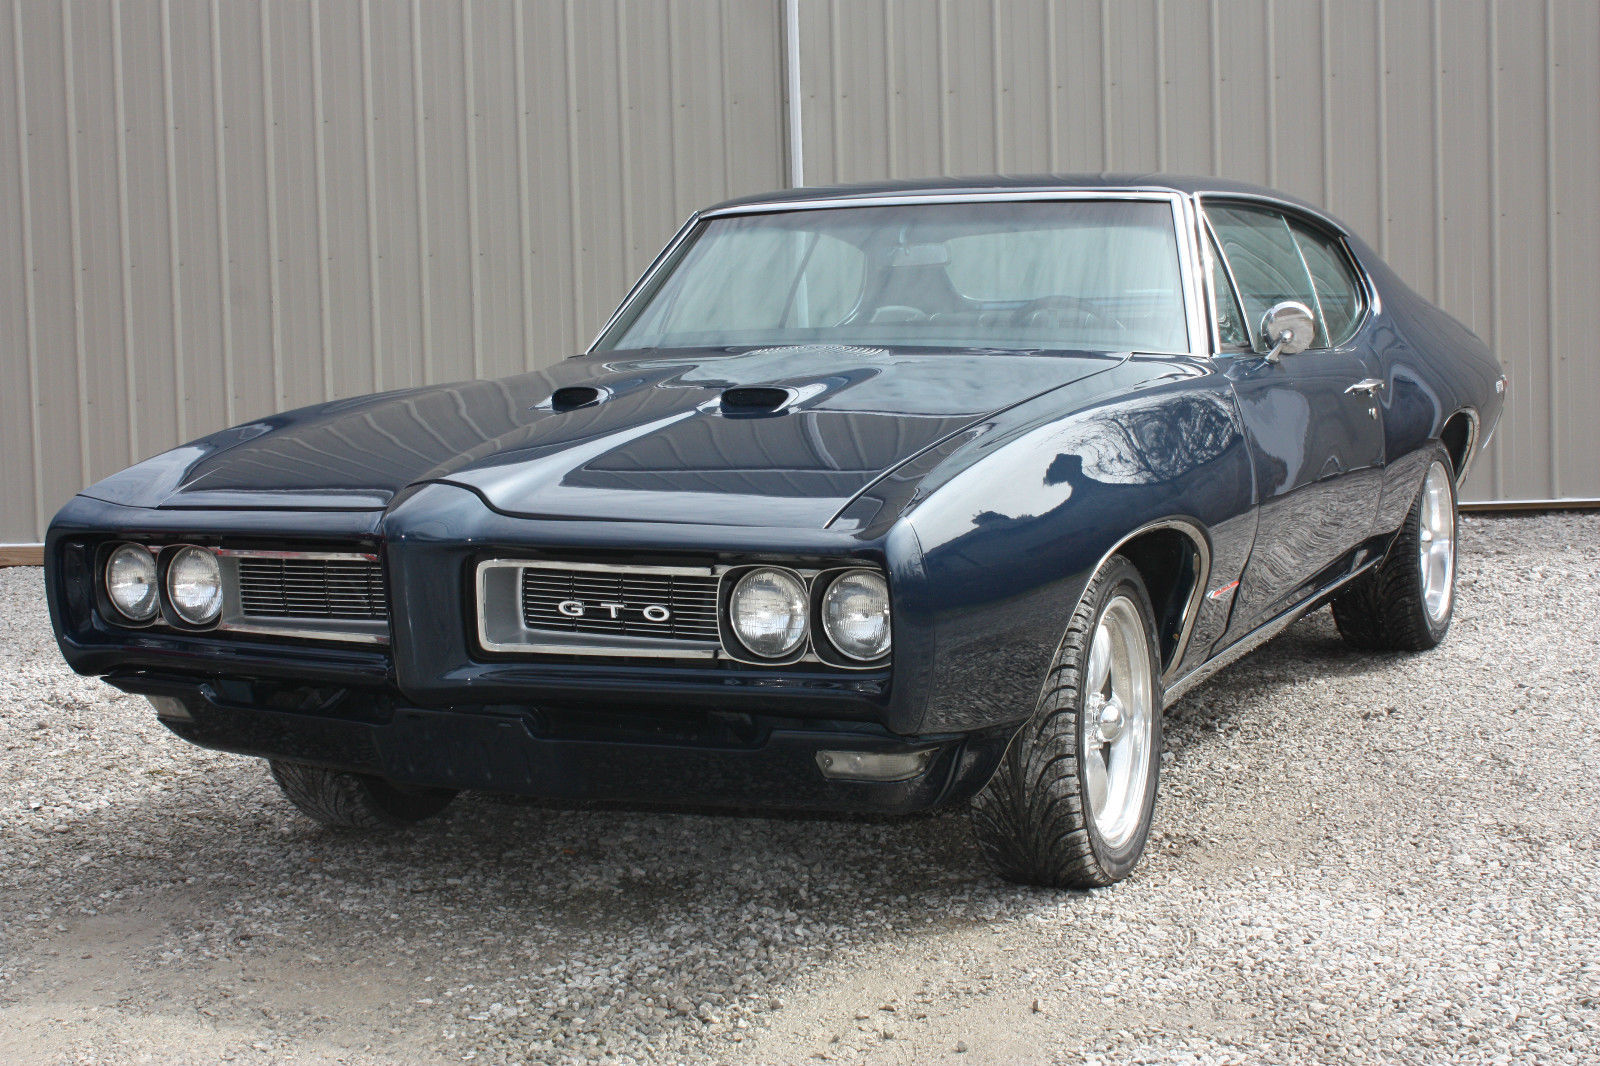 1968 Pontiac Gto Project Cars For Sale